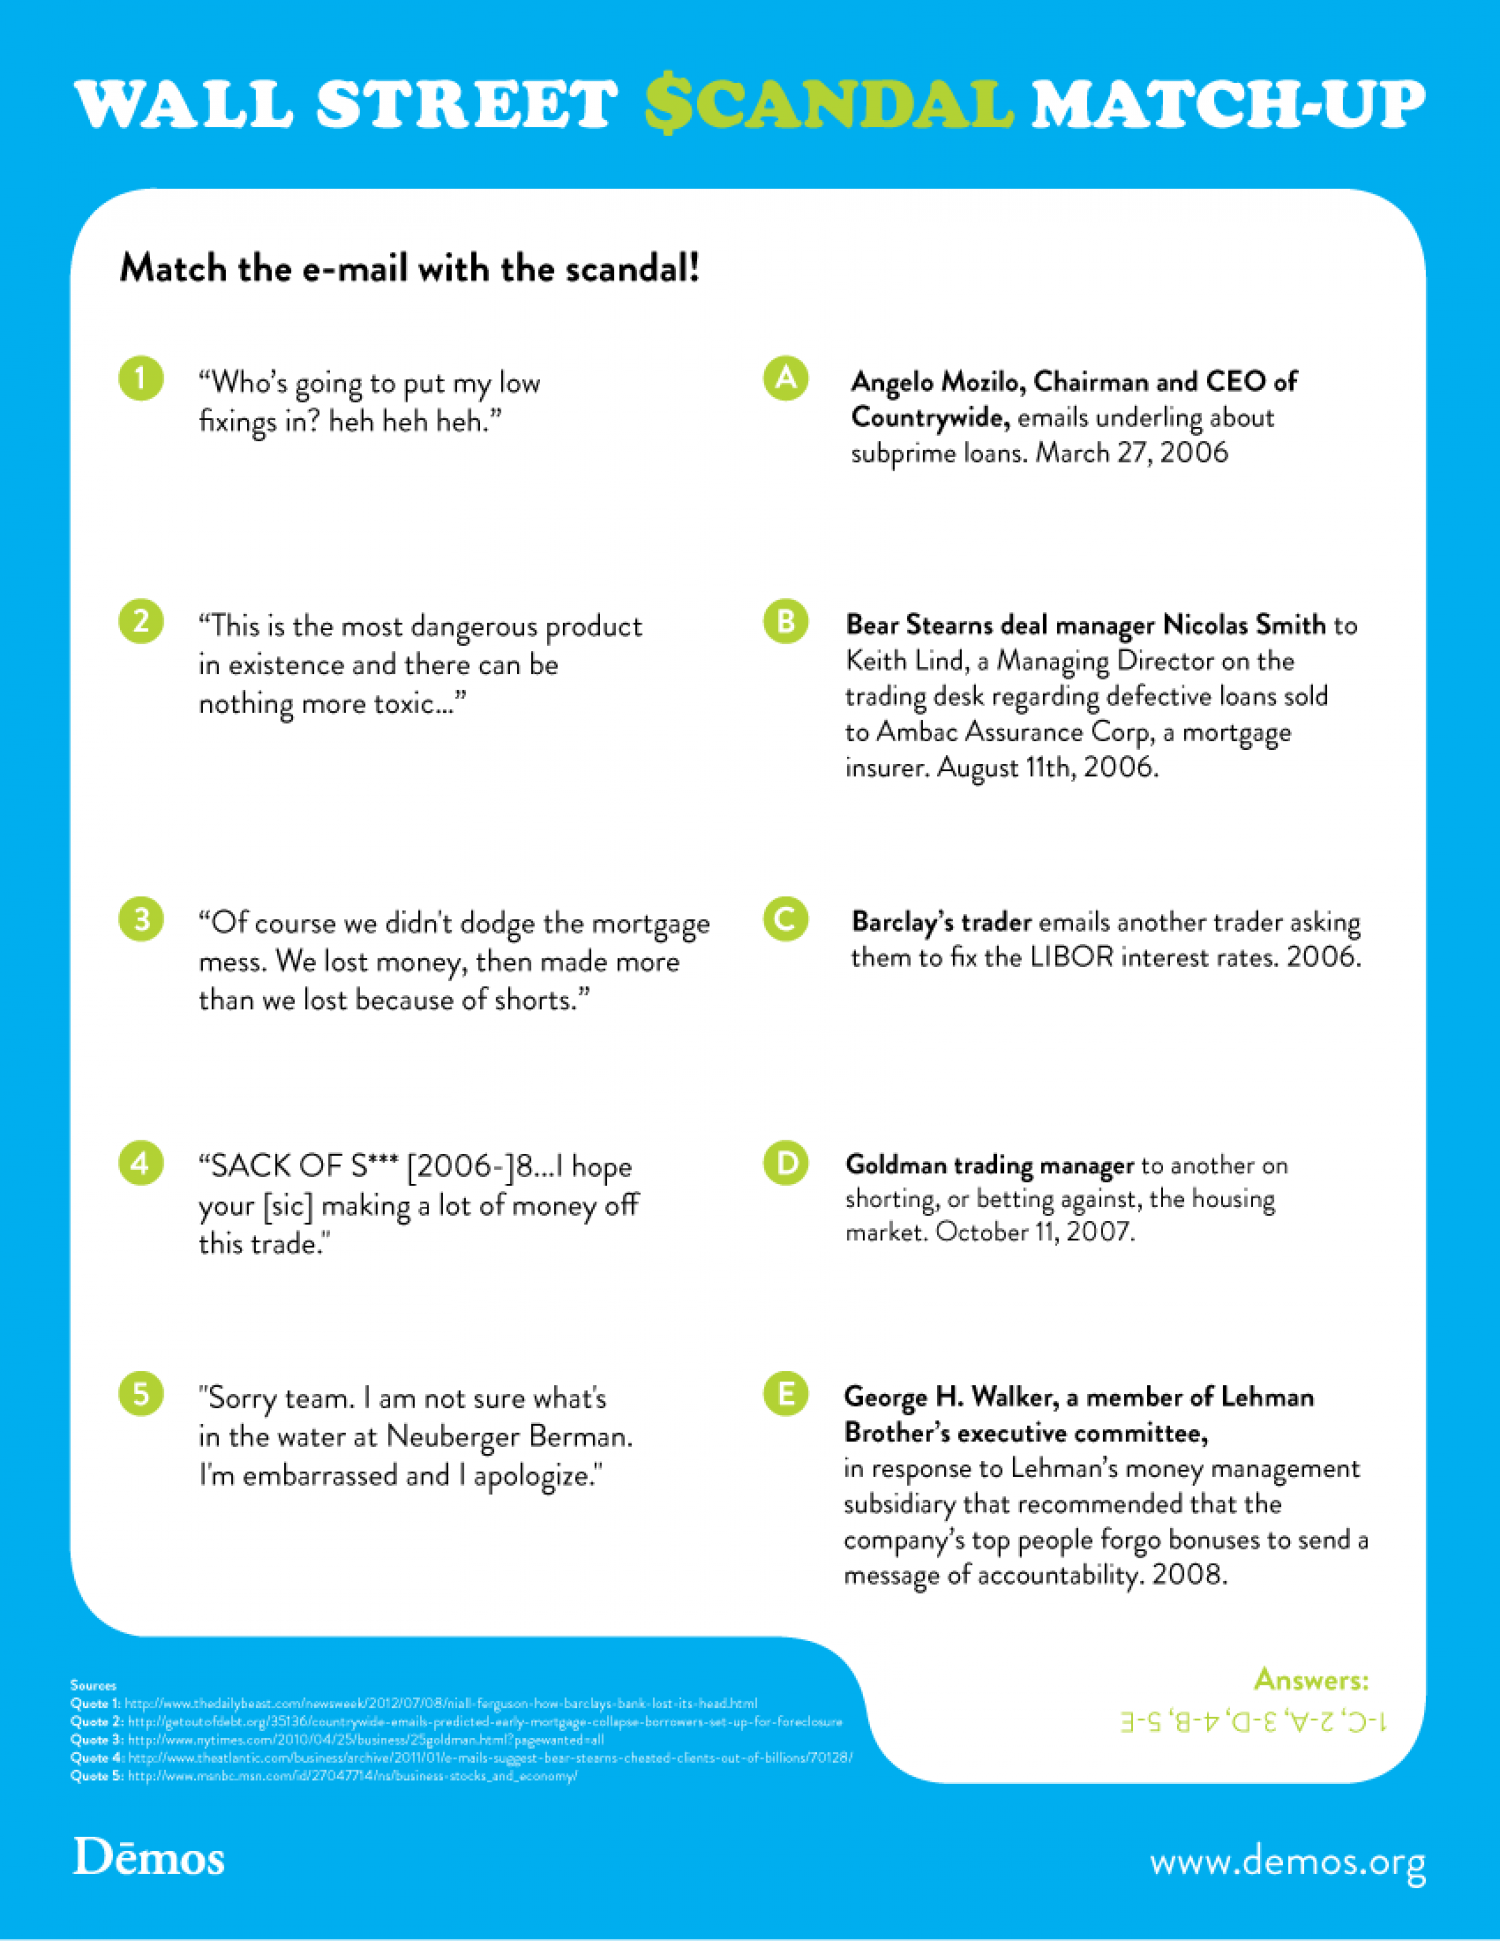 Wall Street Scandal Match-Up Infographic